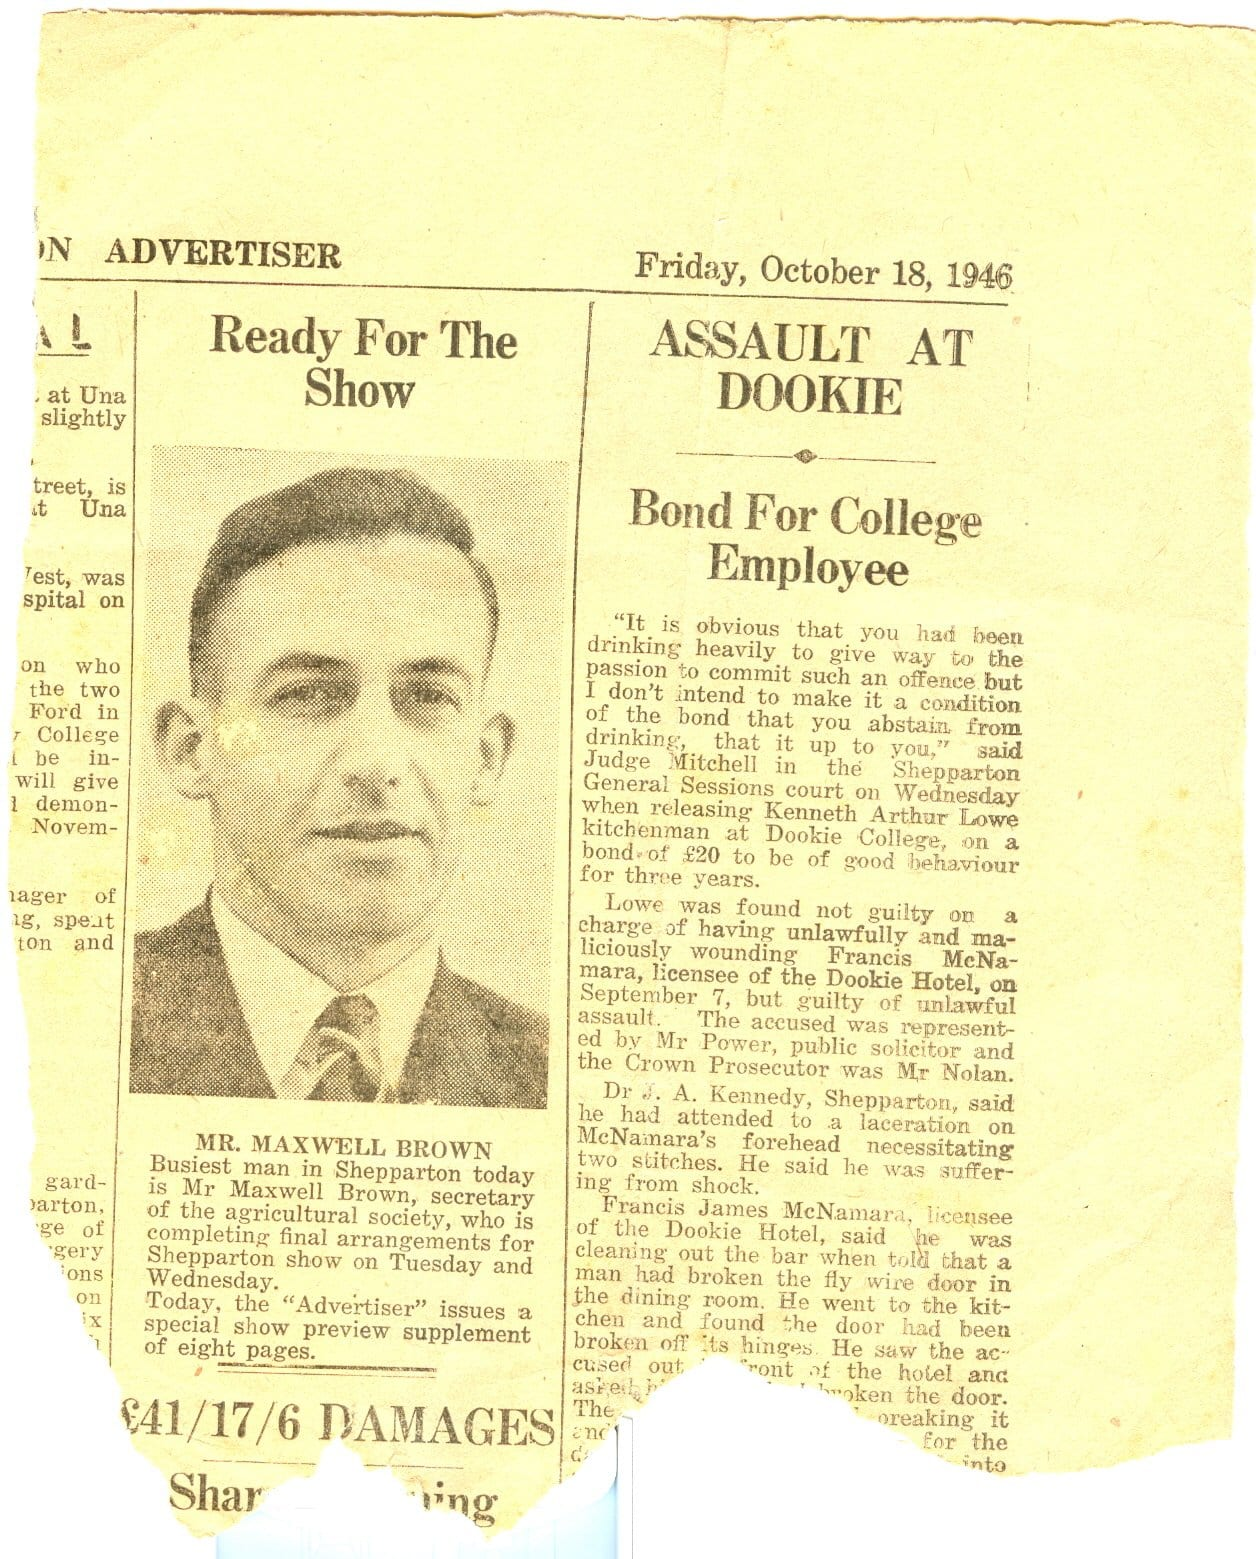 http://www.mbmgroup.com.au/wp-content/uploads/2016/10/Max-newspaper-article-1946.jpg